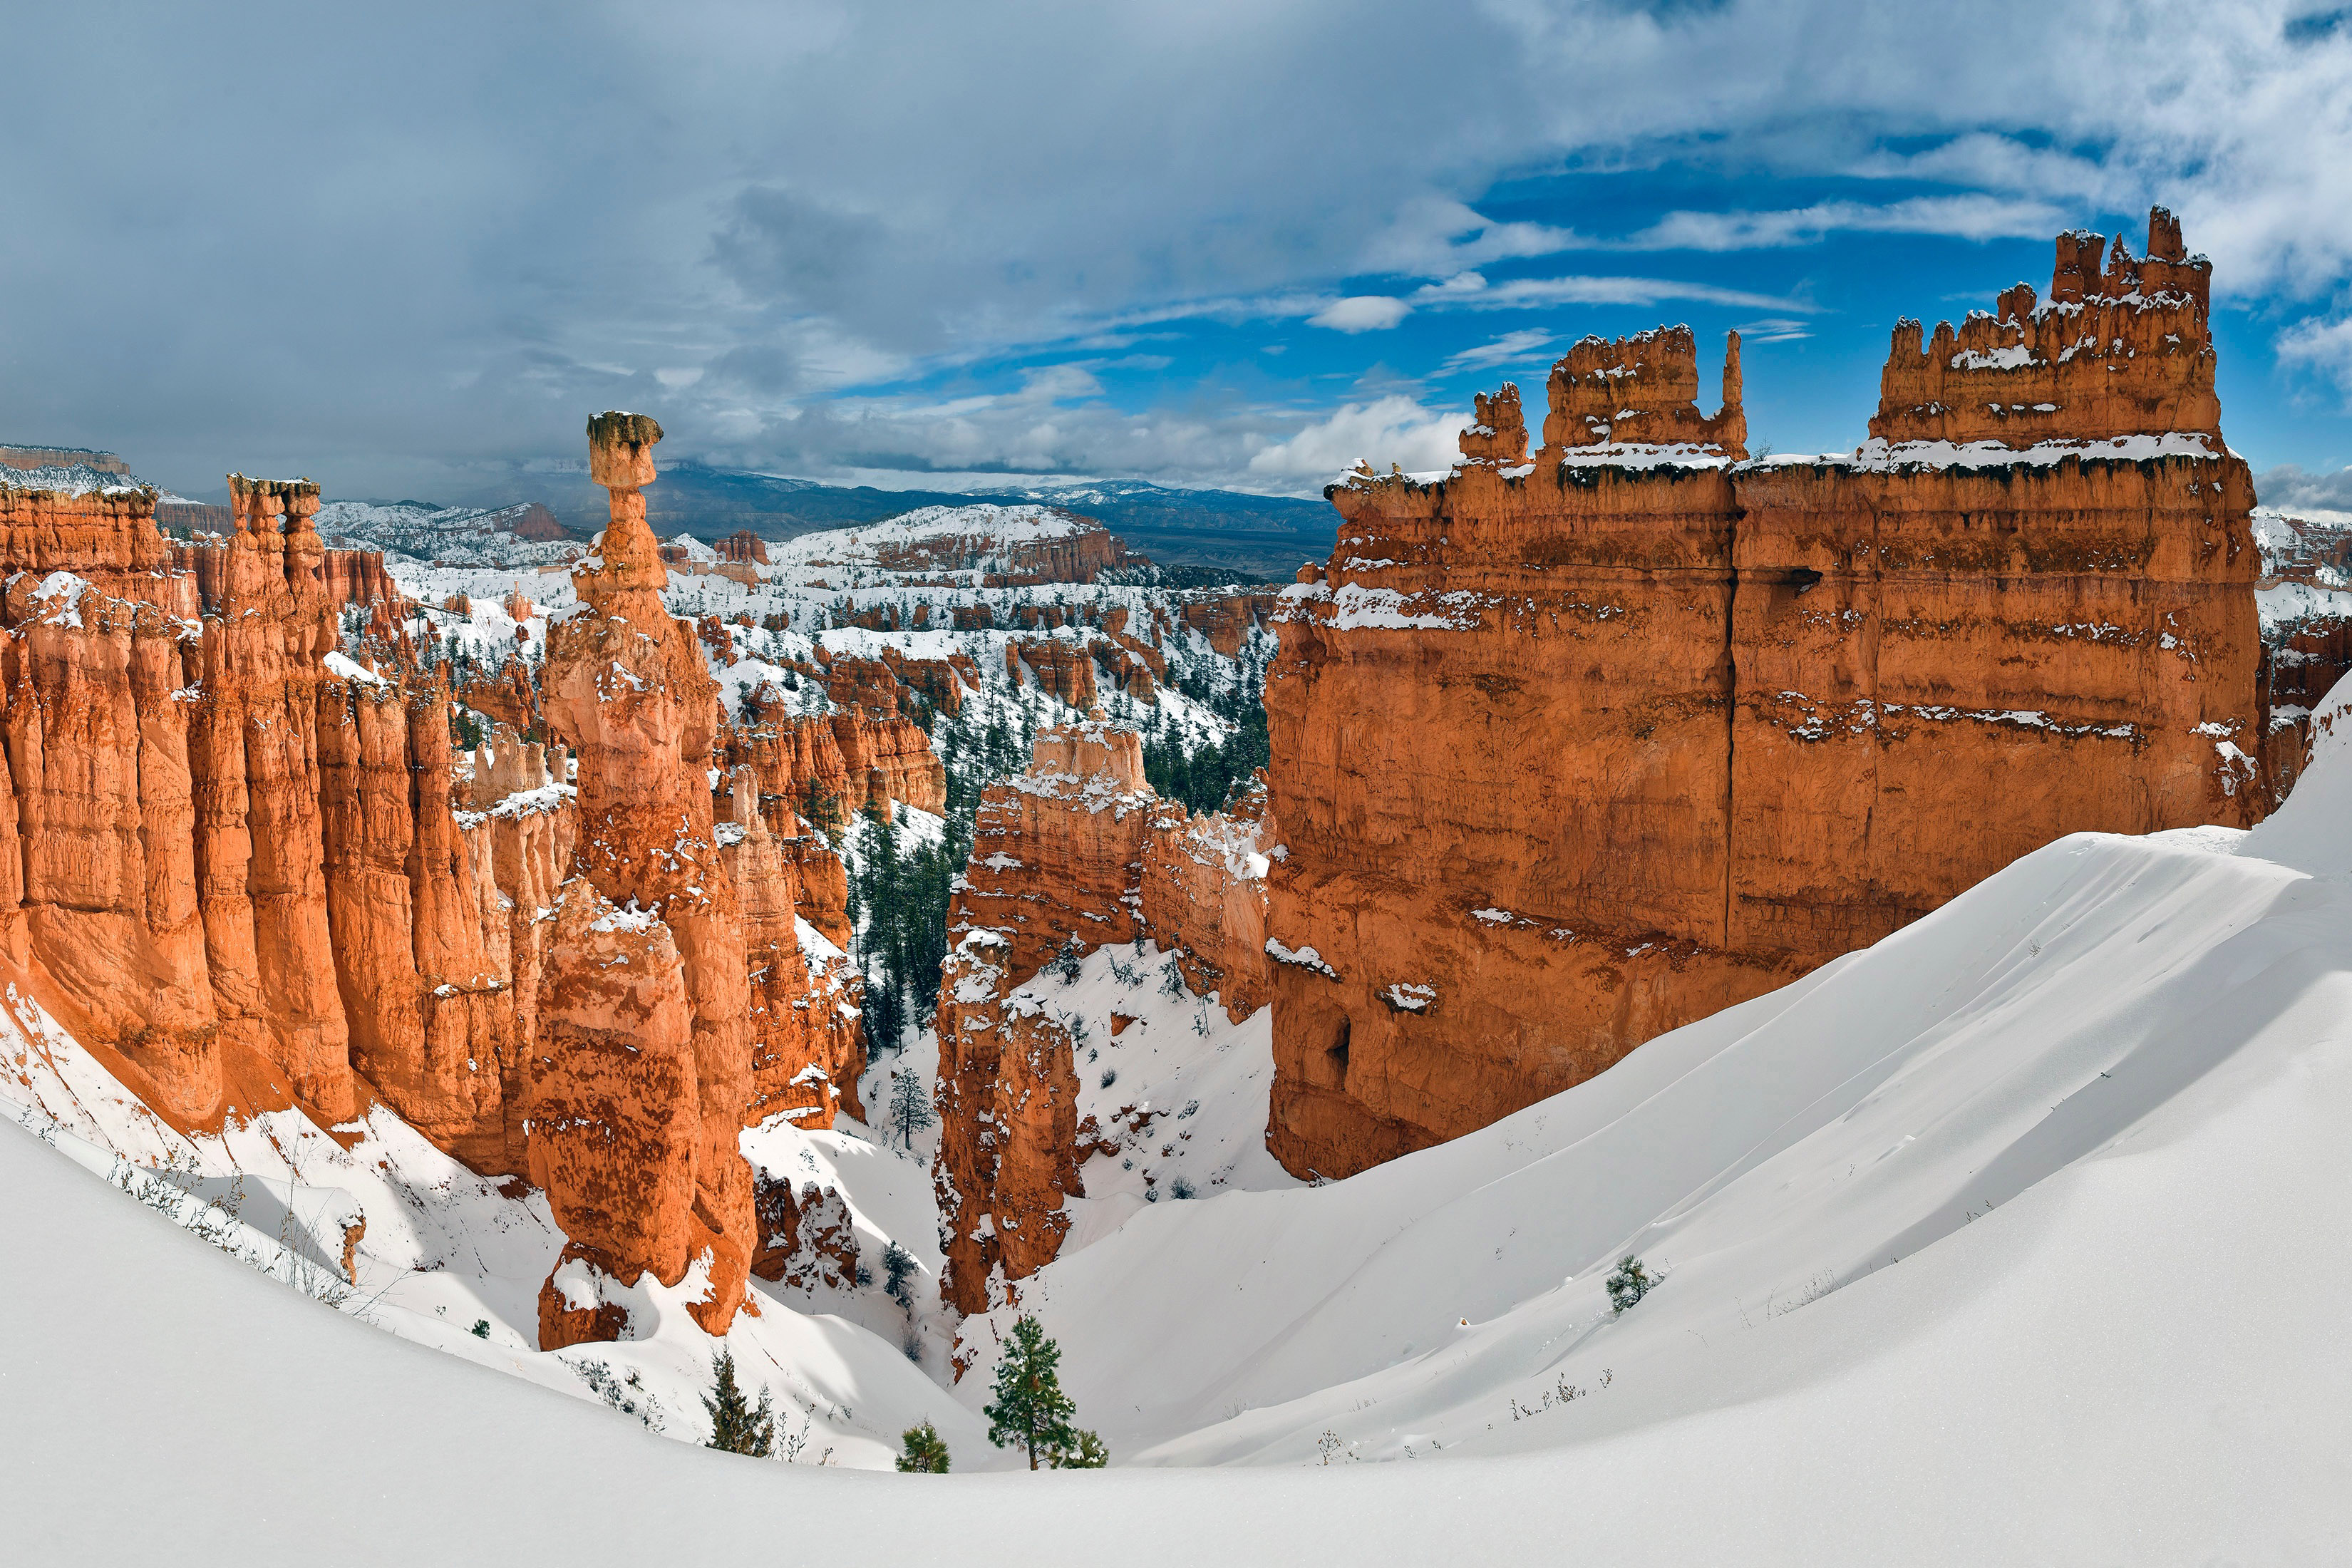 Winter Landscape with Thor's Hammer in Bryce Canyon National Park.